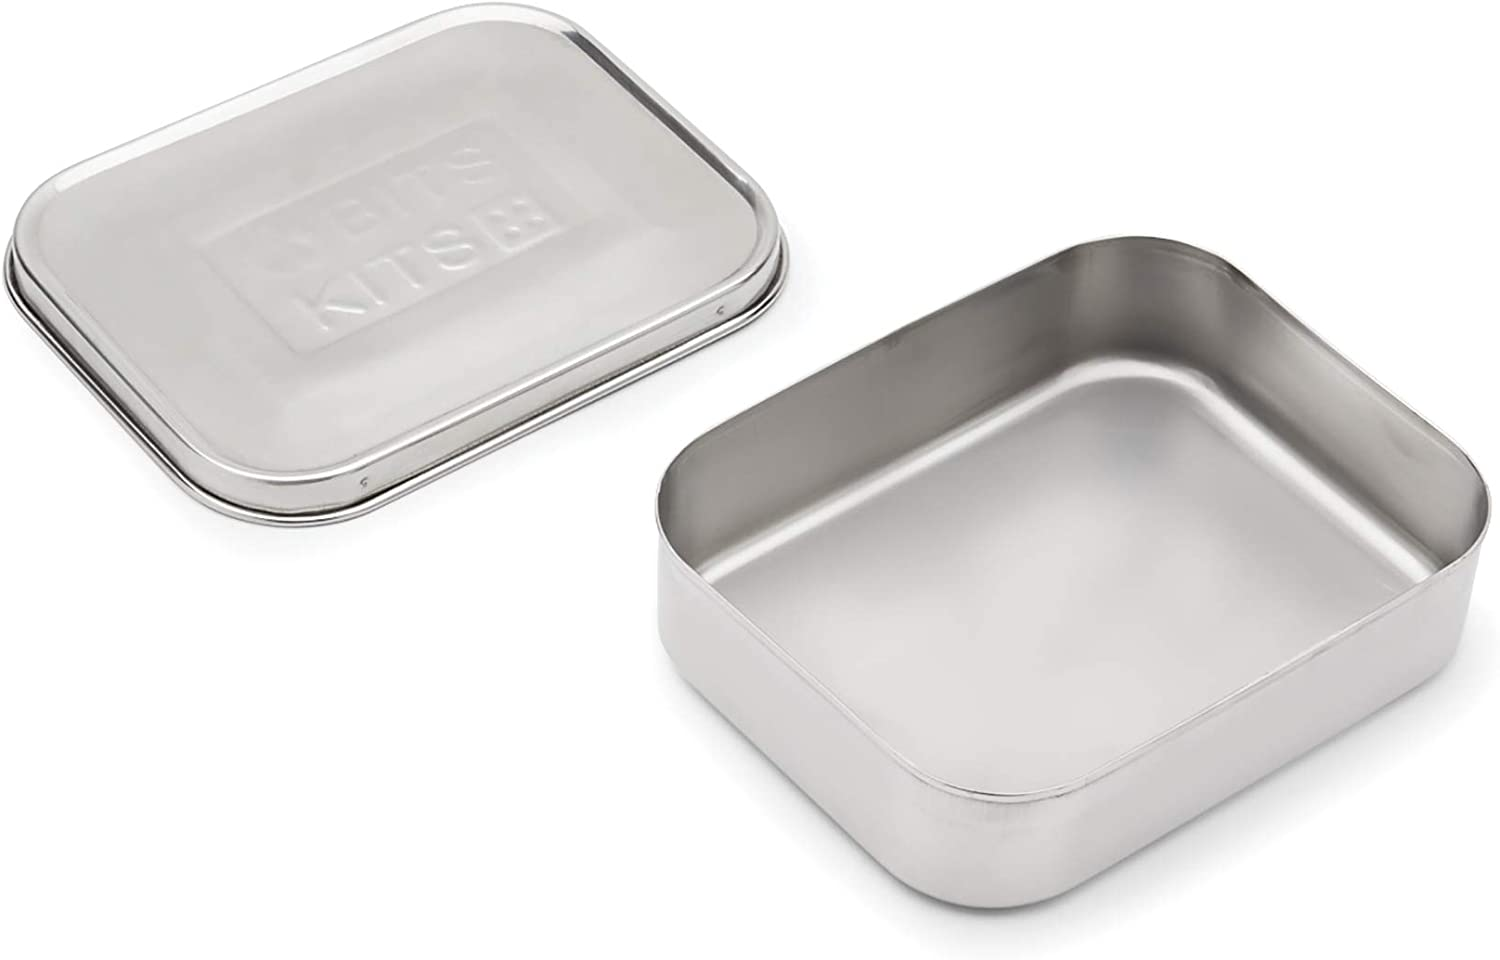 Bits Kits Stainless Steel Bento Box Lunch and Snack Container for Kids and Adults, 1 Compartment, 3 Cup Capacity